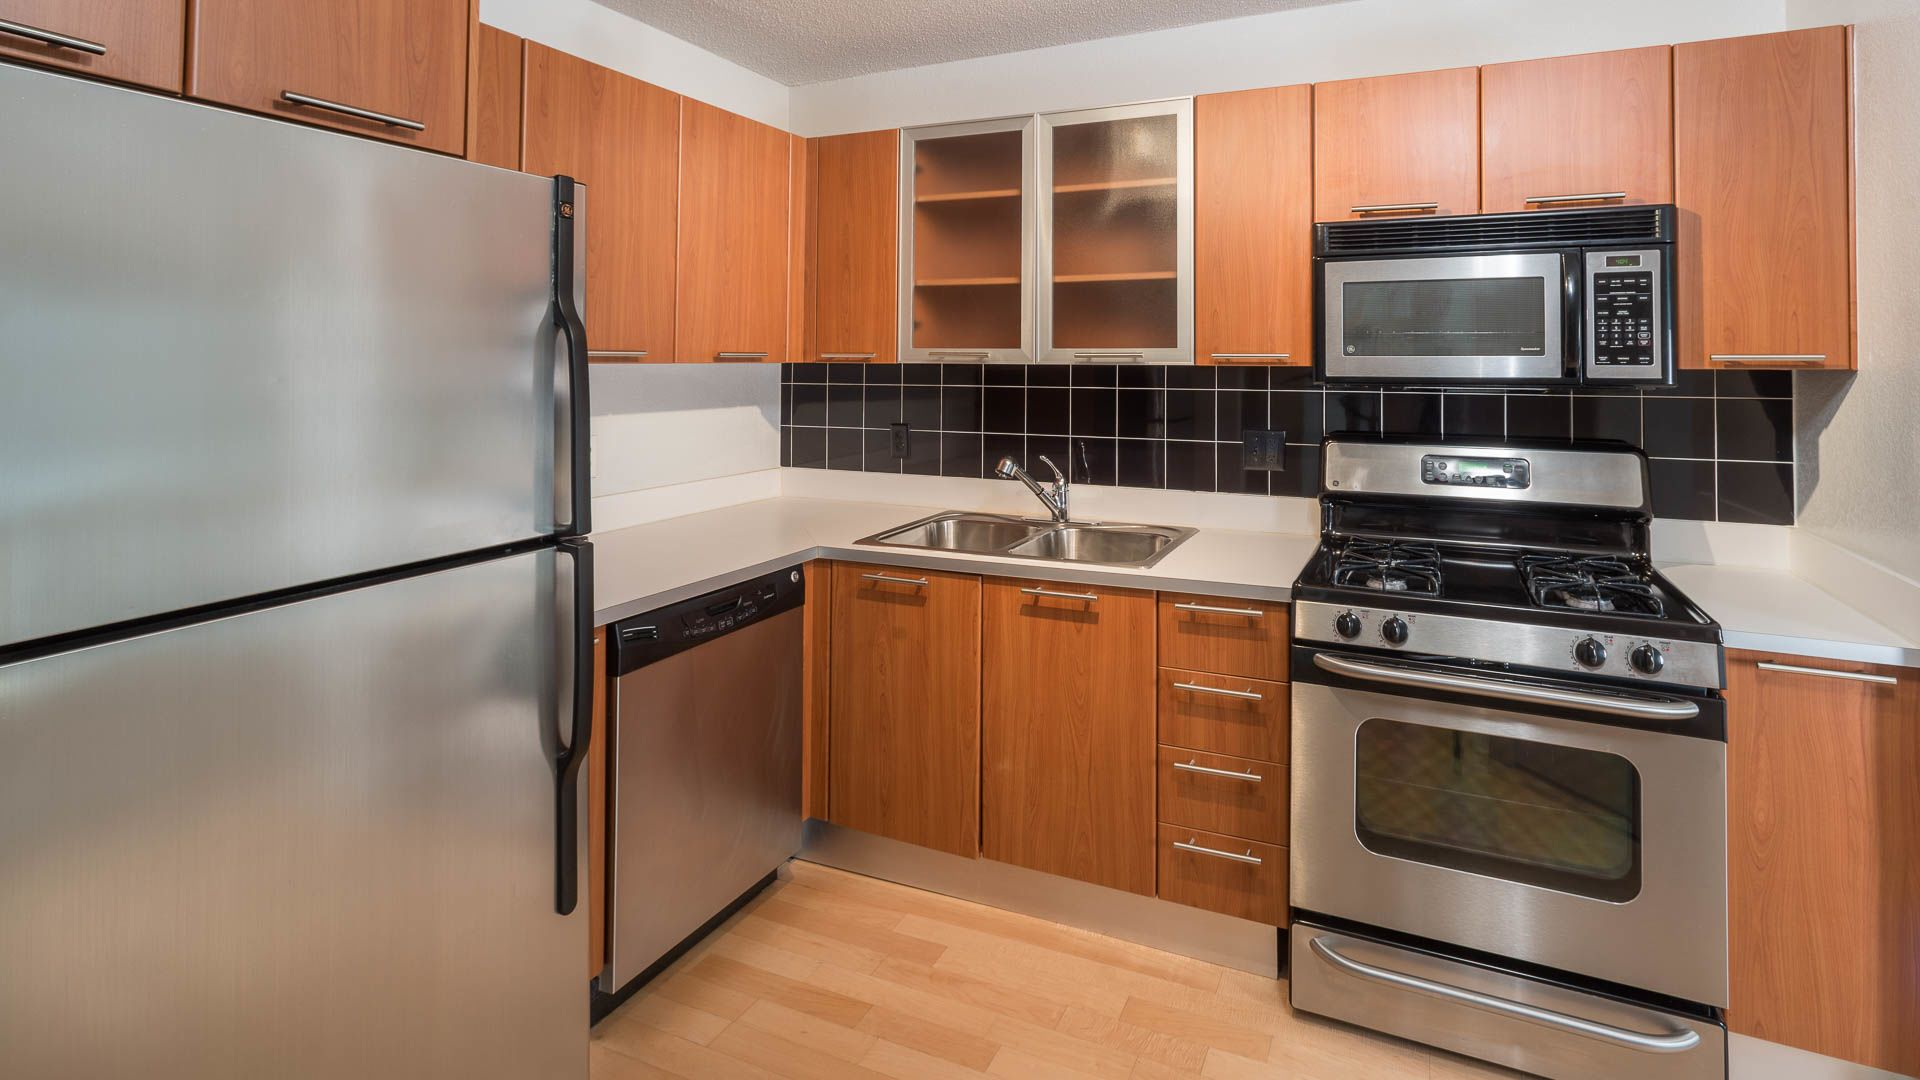 The Flats at Dupont Circle Apartments - Kitchen